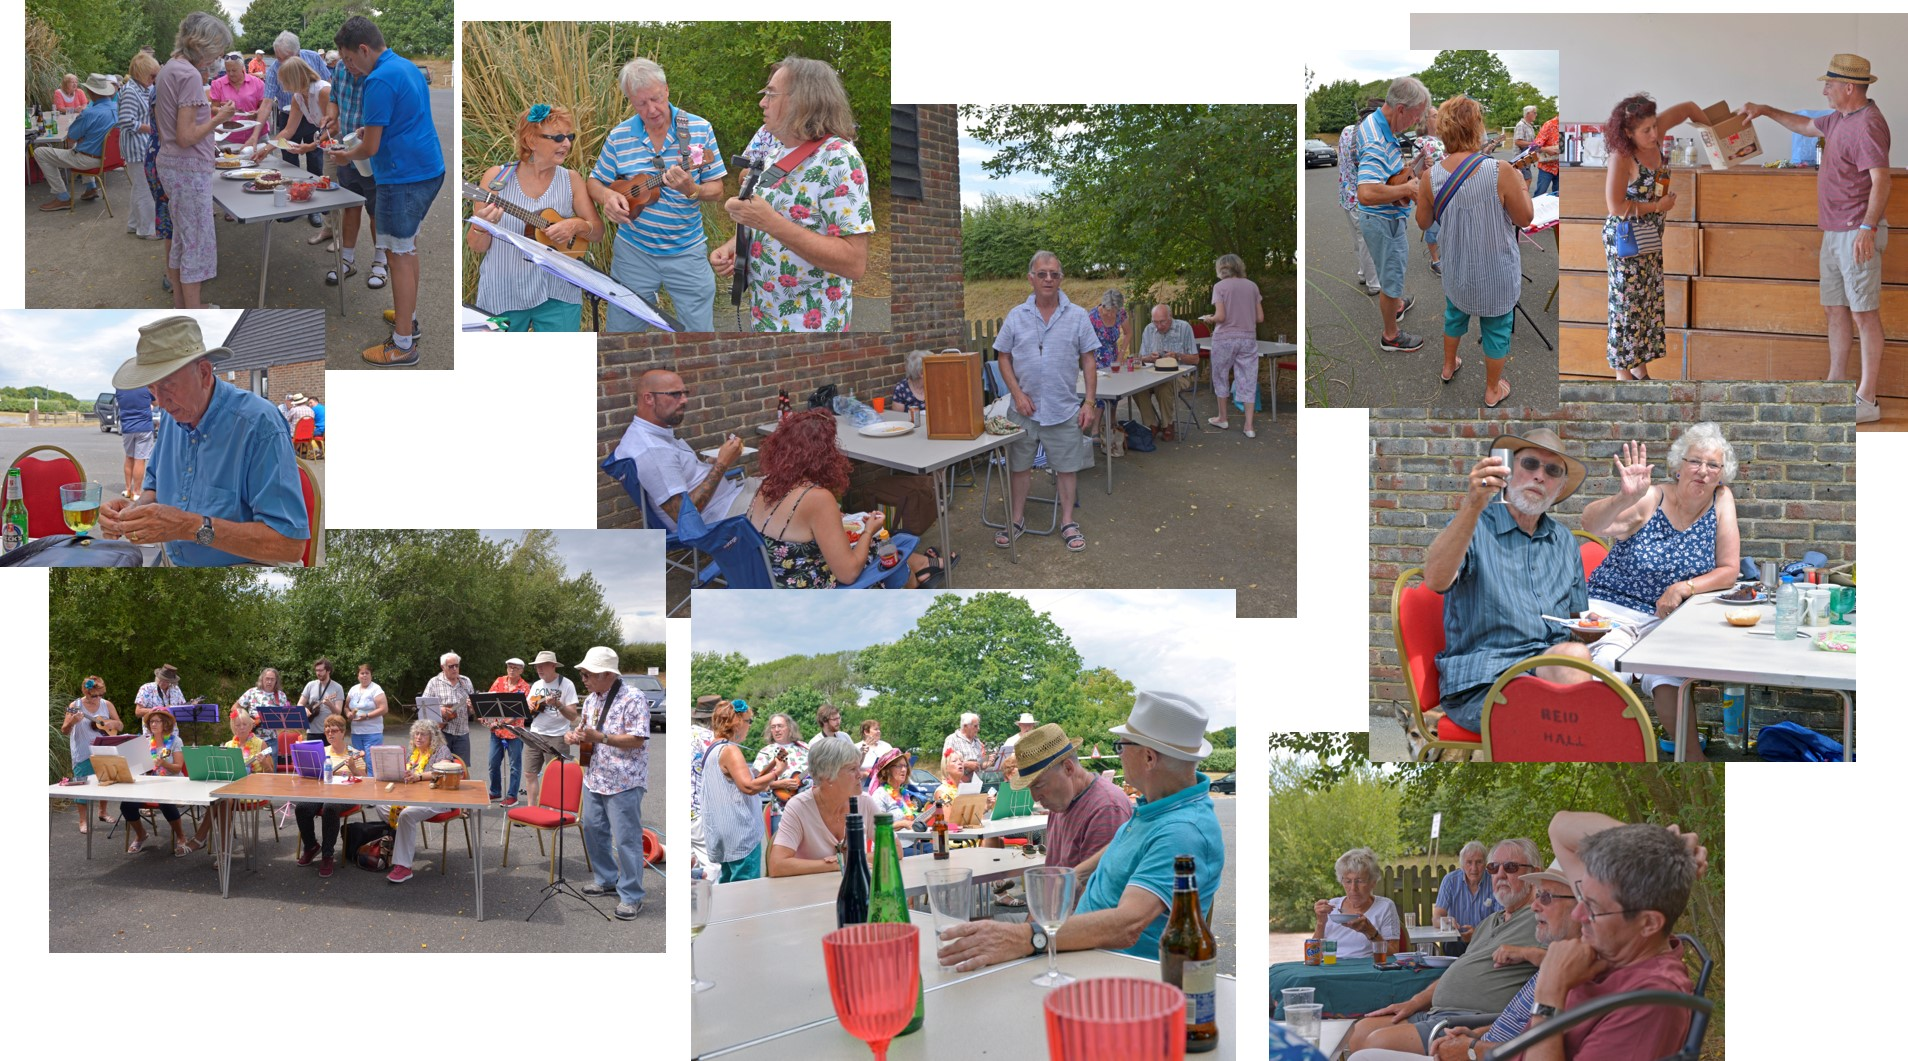 This is our summer bbq held at Reid Hall, Boreham Street. It was sunny and hot